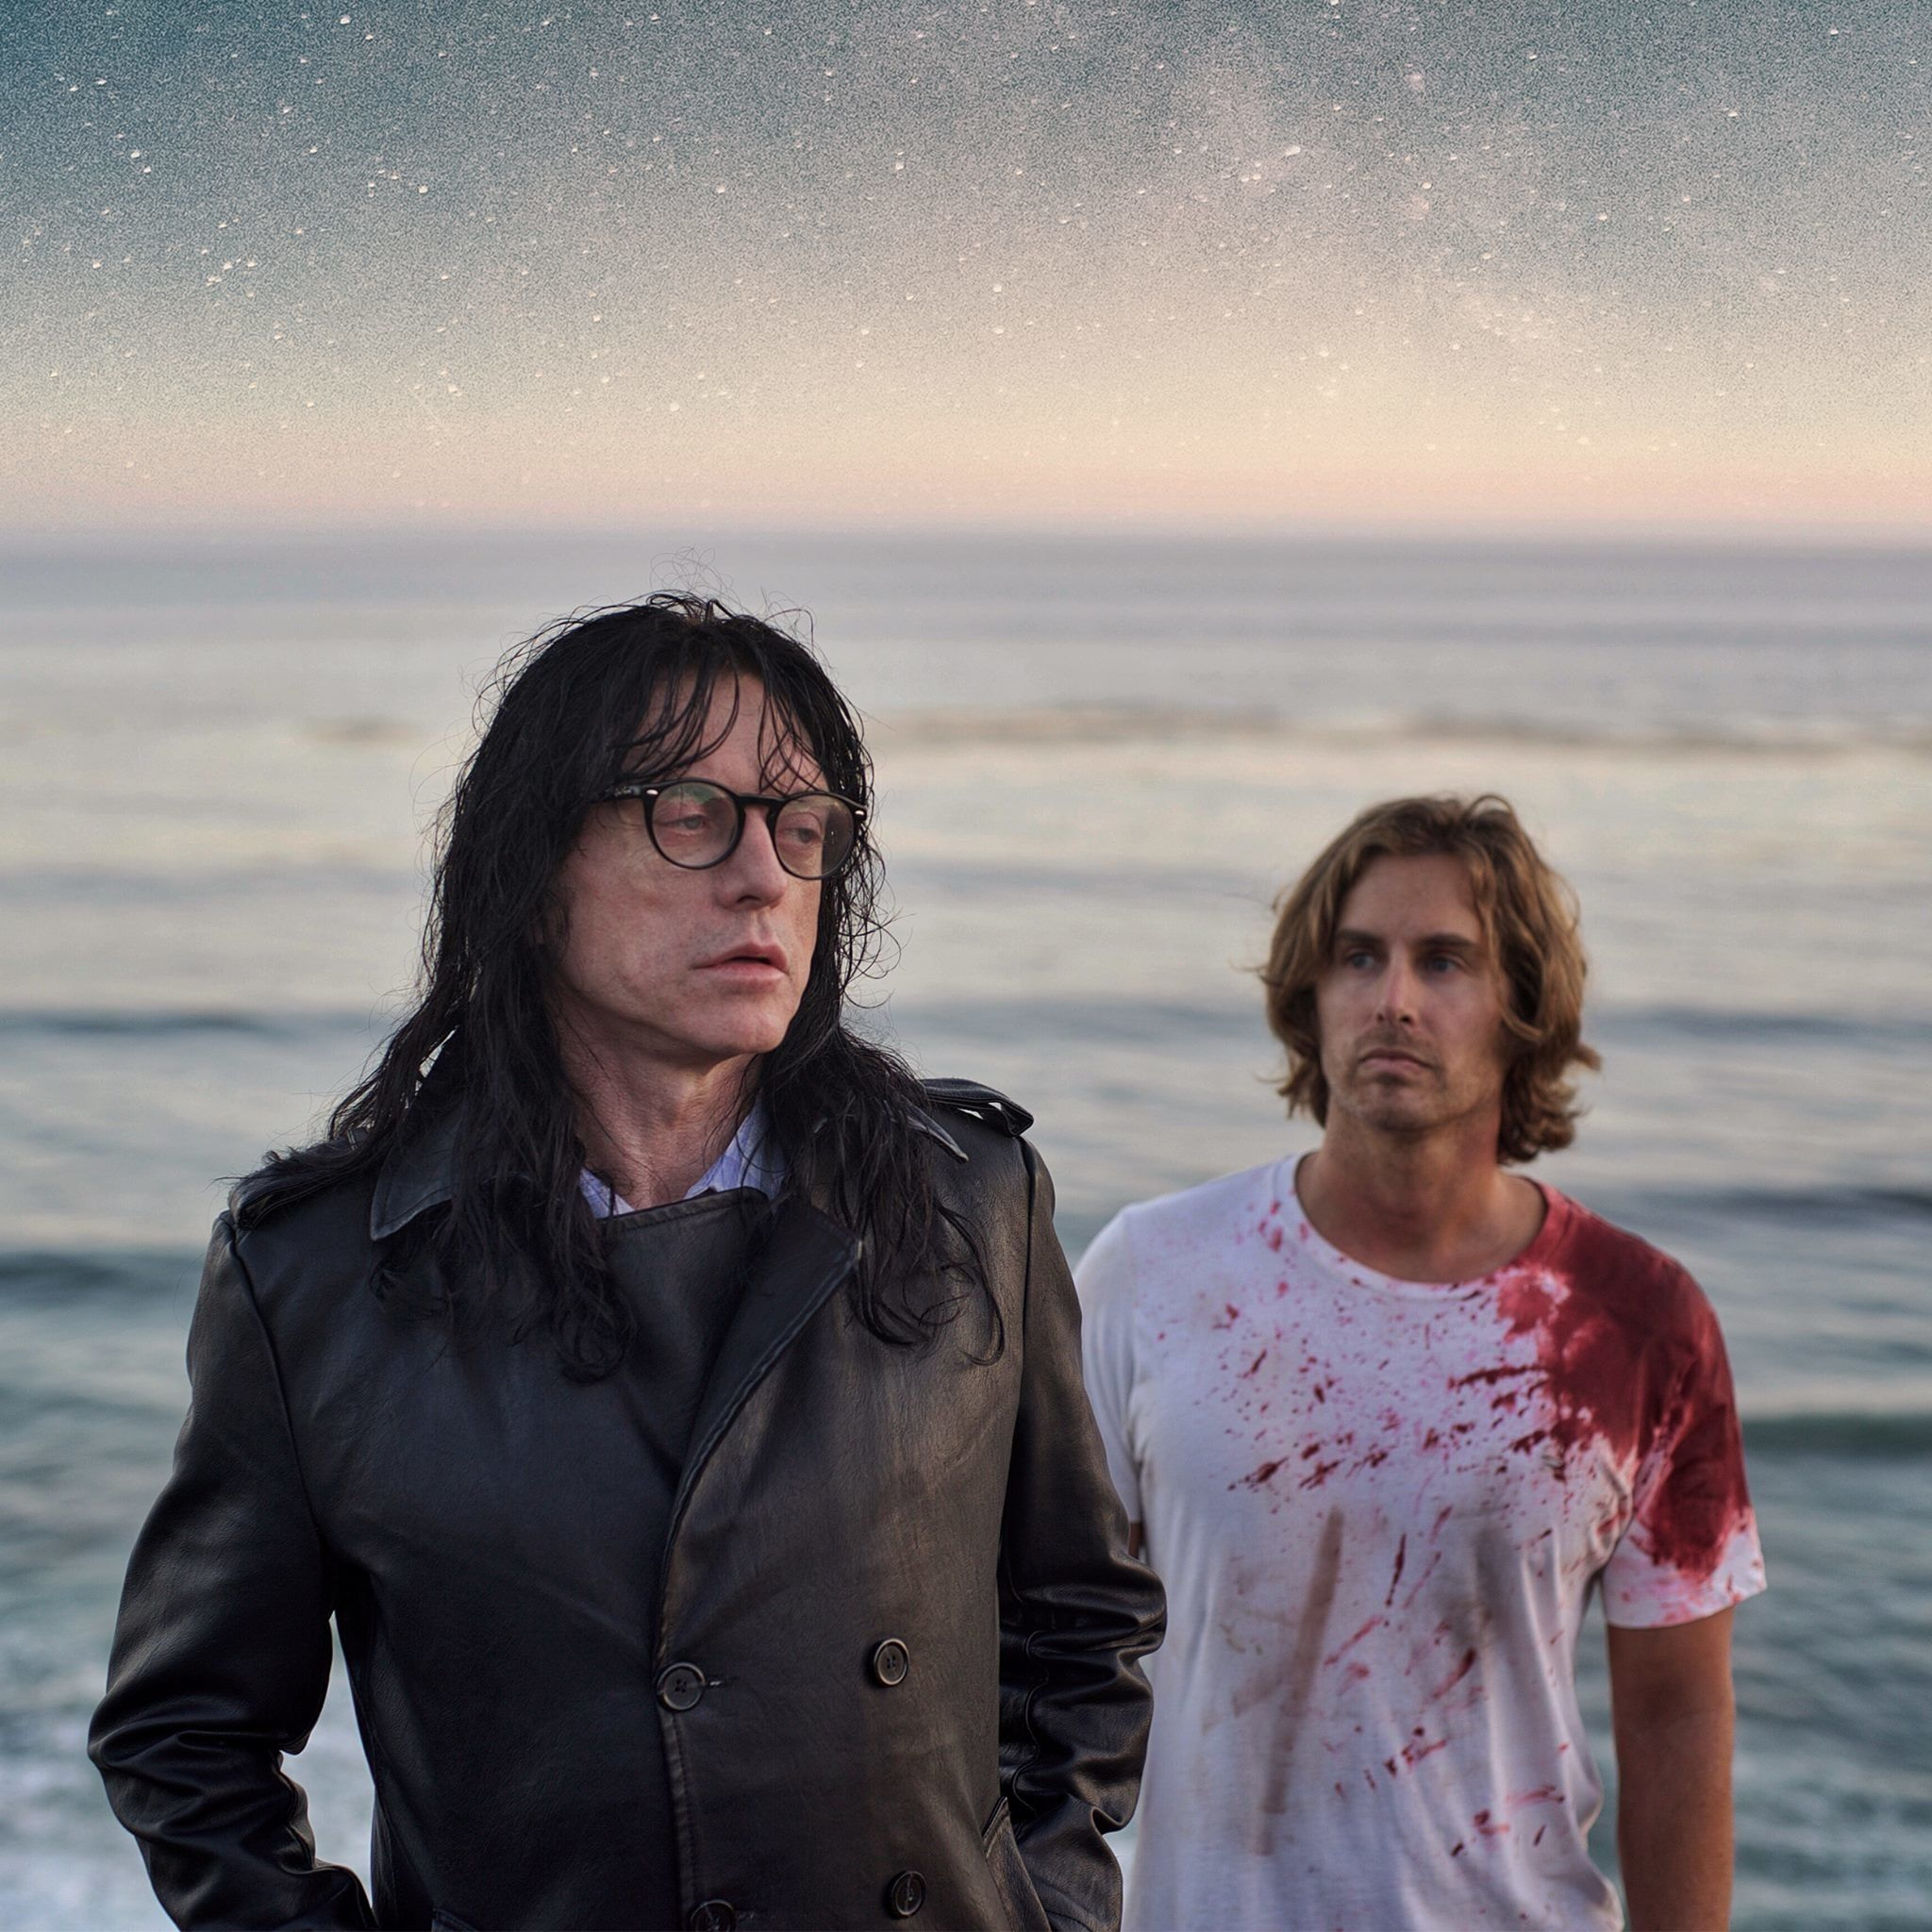 Tommy Wiseau Is About To Star In Another Weird Movie Here S What To Expect Huffpost New Movies Greg Sestero Movies